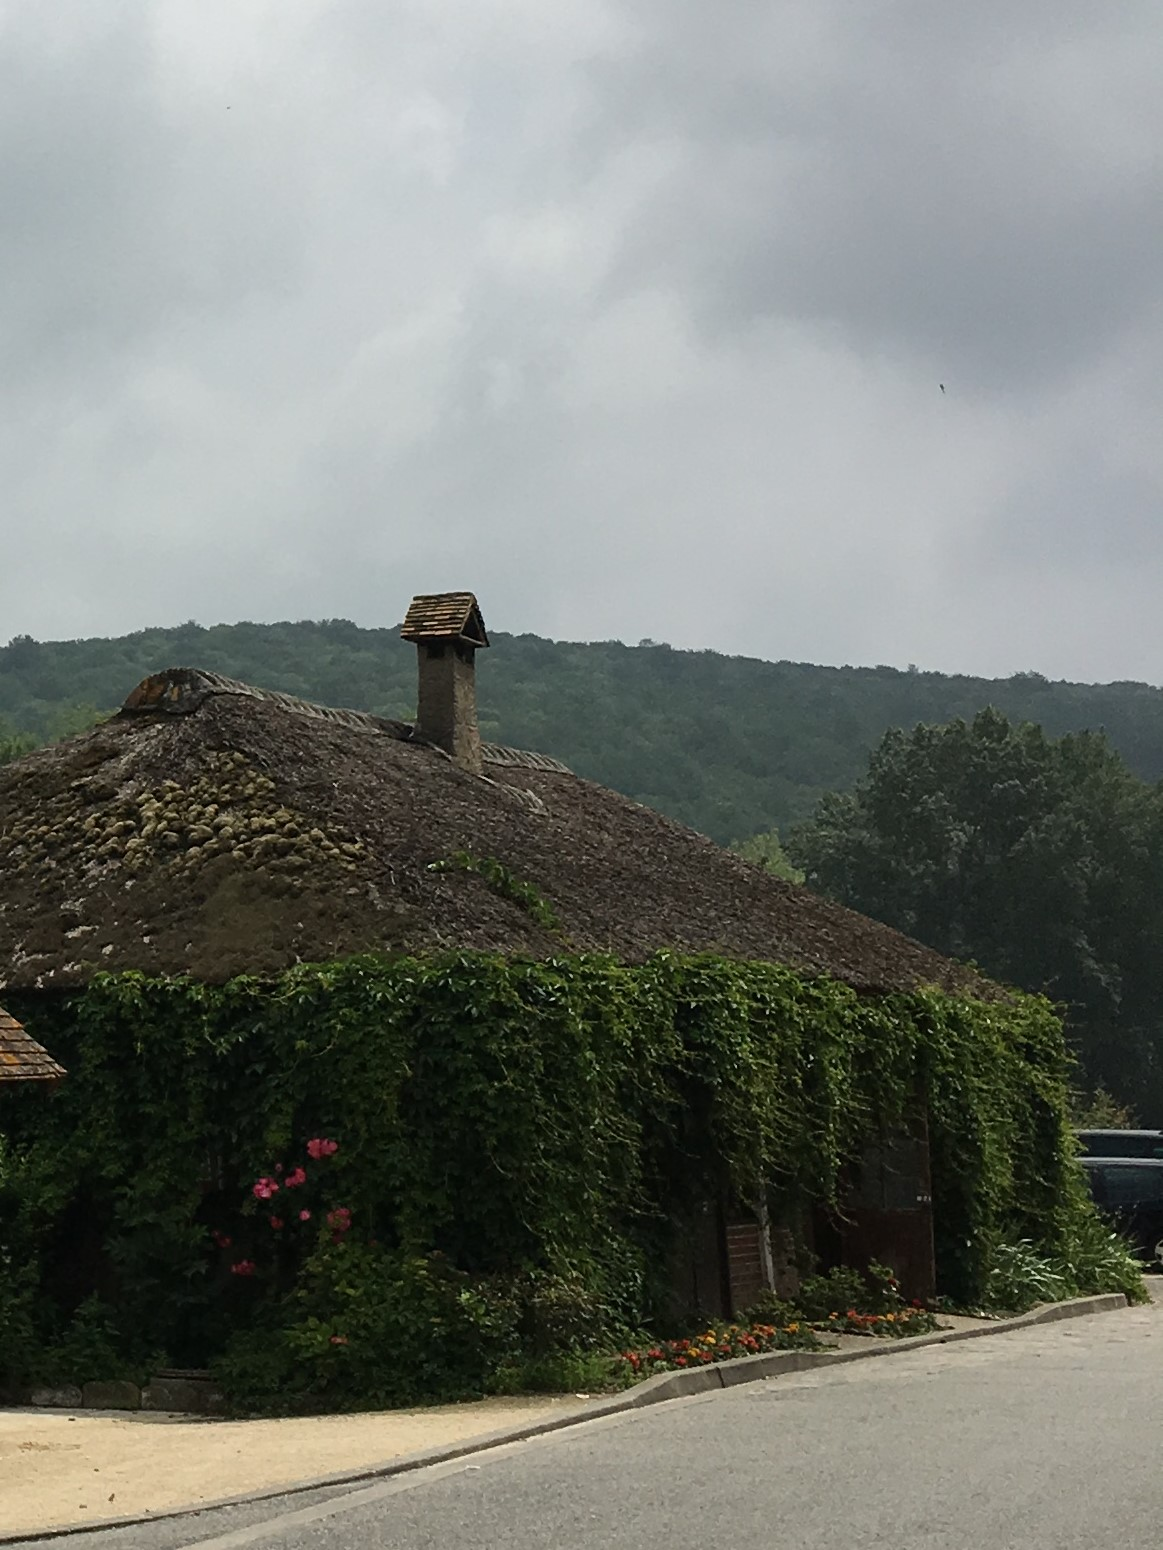 The ivy-covered walls and moss-covered thatched roof make the cafe look as though it grew out of the riverbank